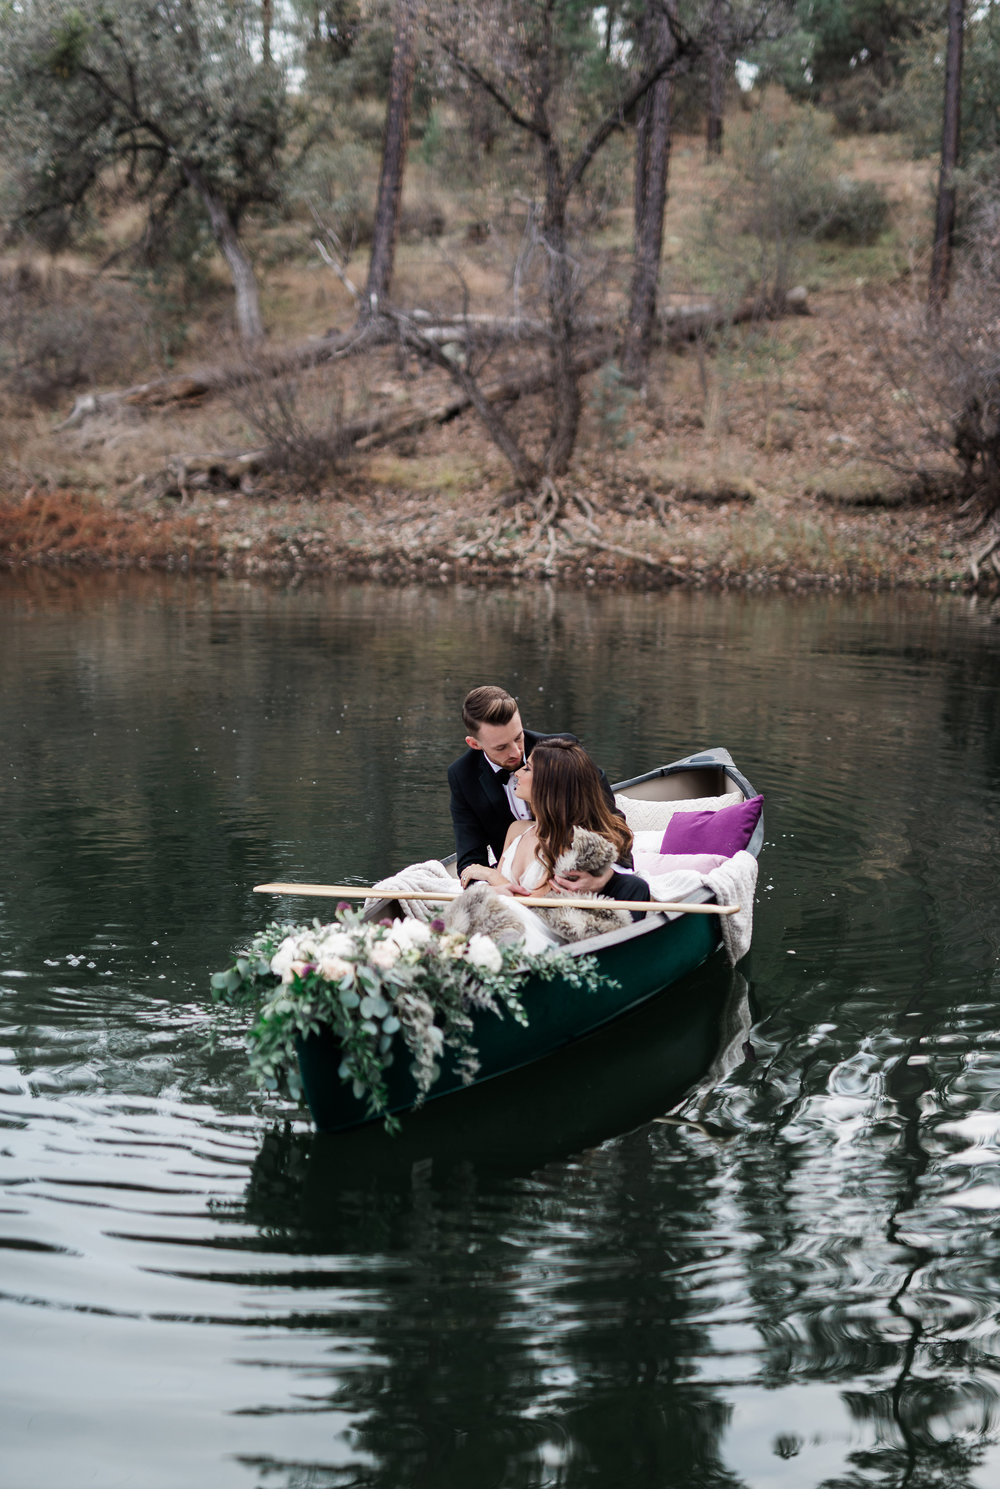 Arizona Lakeside Winter Elopement with Saje Photography | Shotgunning for Love Letters | Canoe Wedding